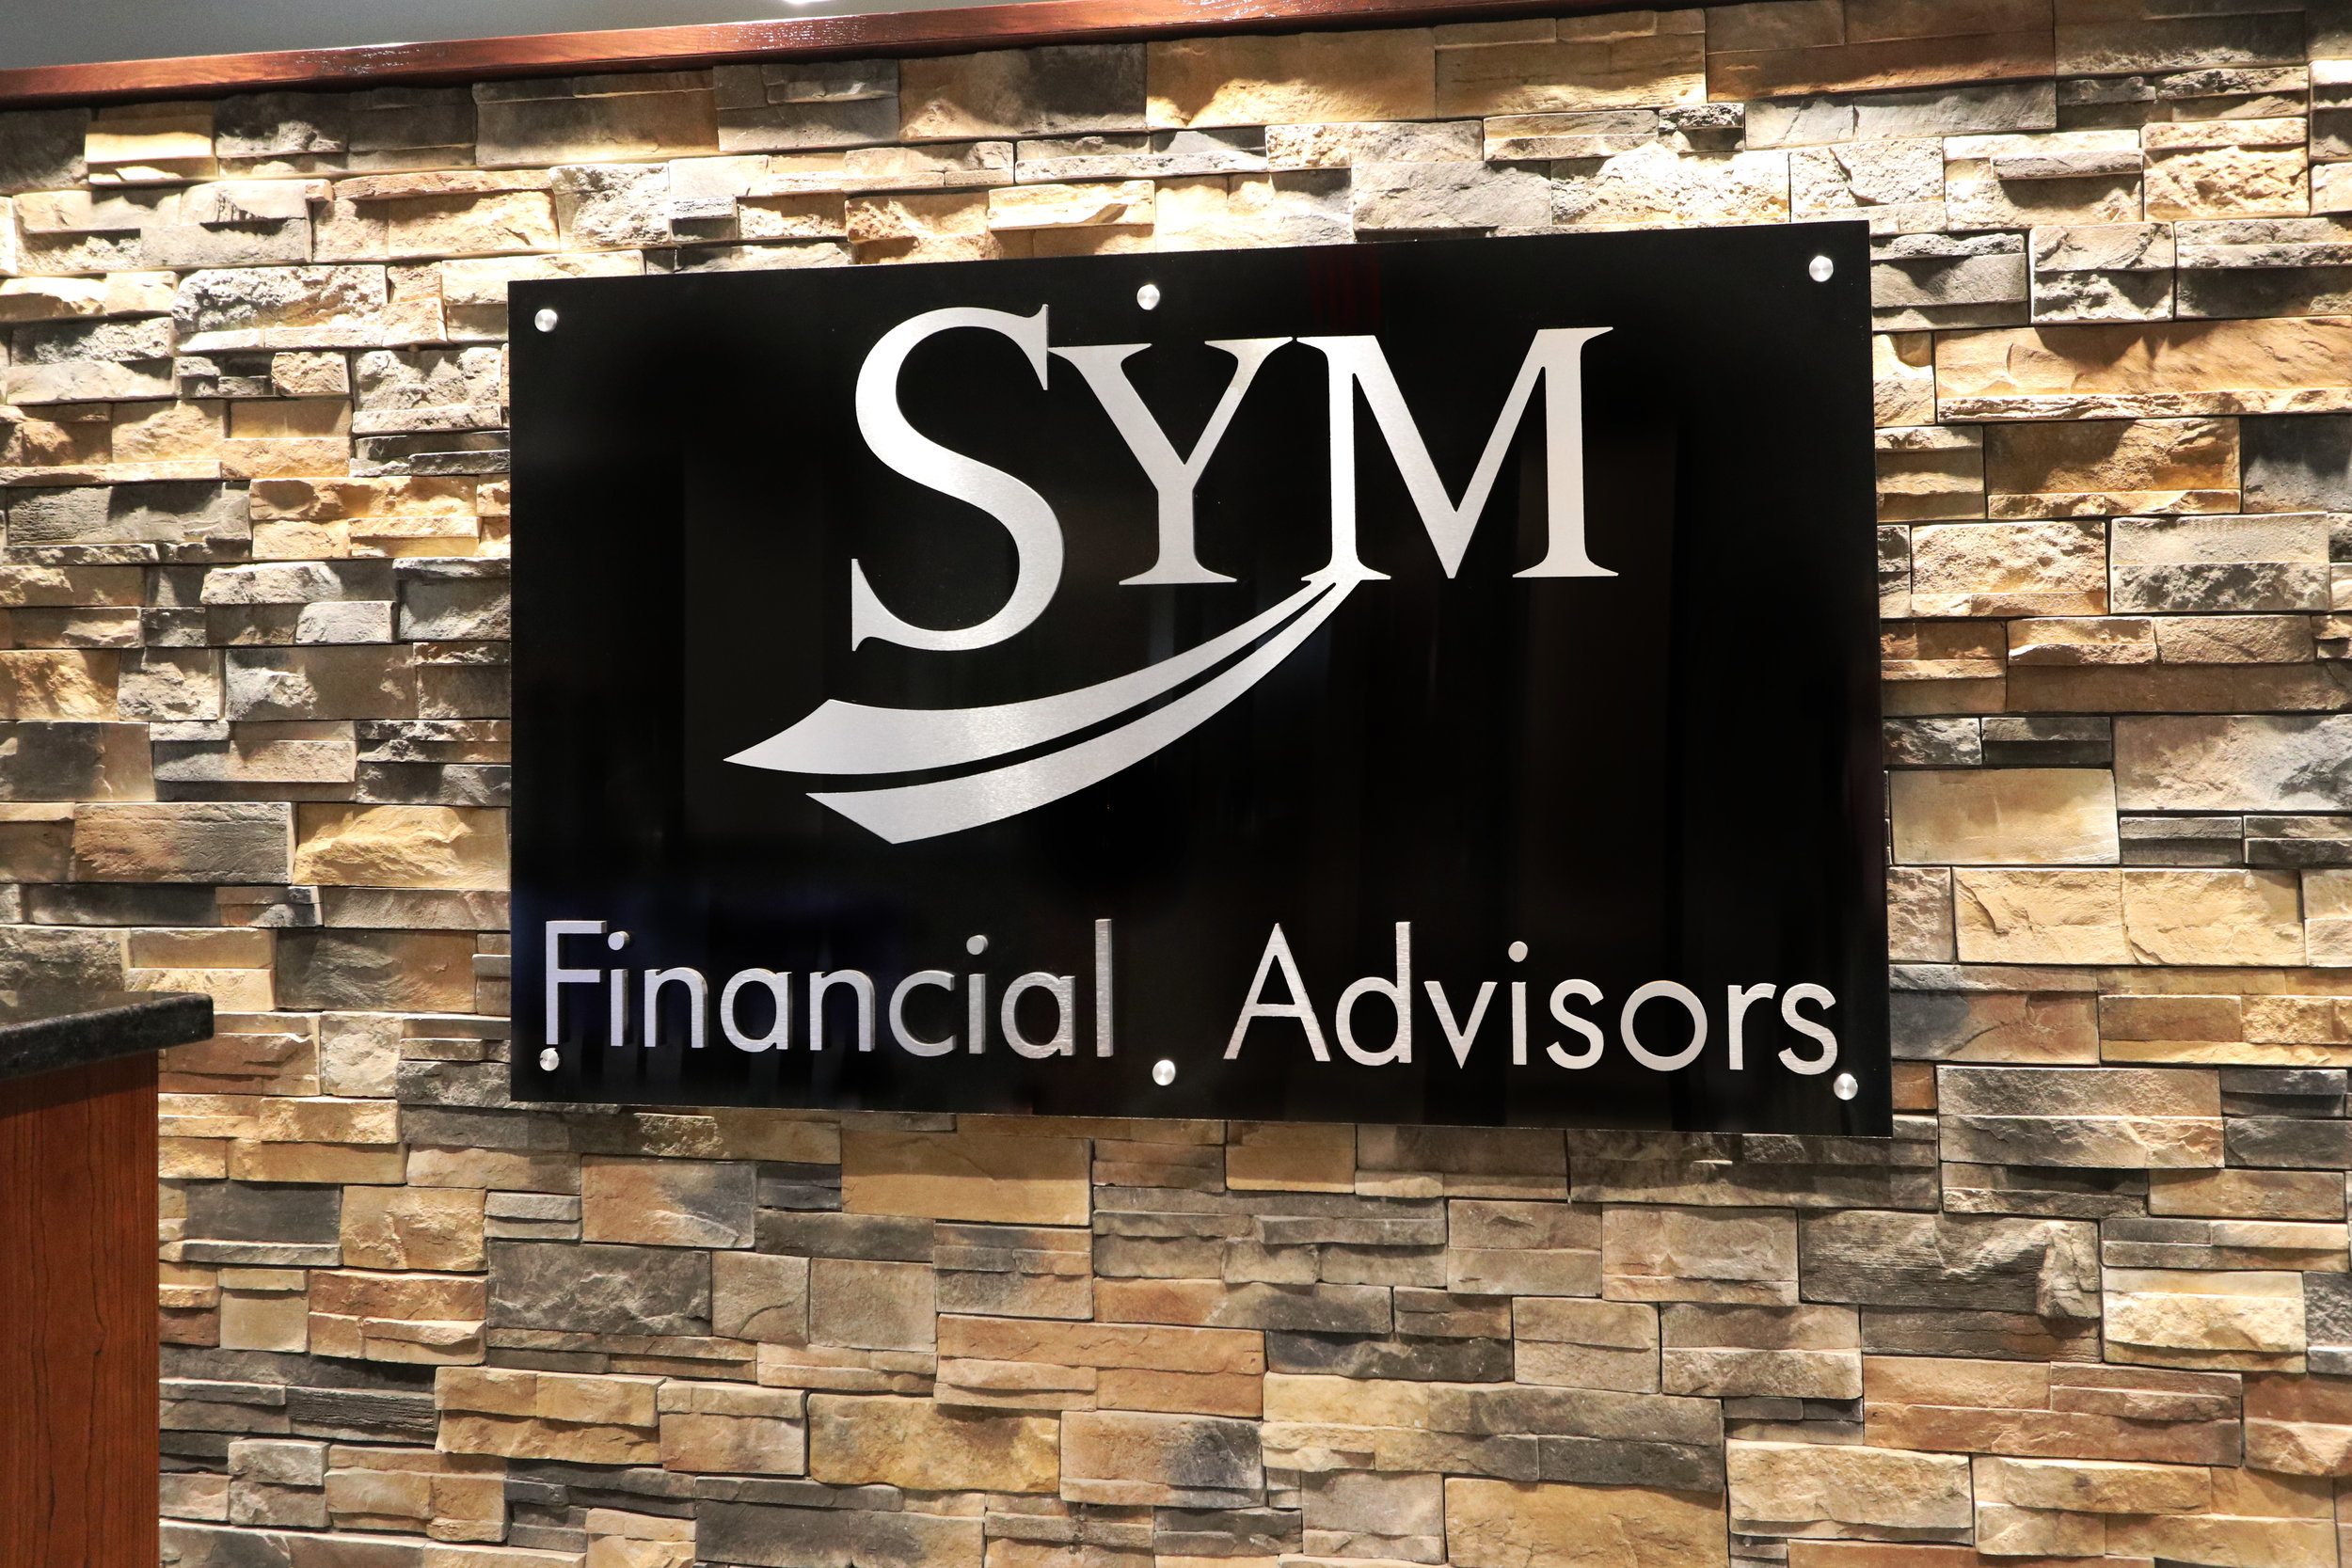 Sym Financial Advisors Sign.jpg